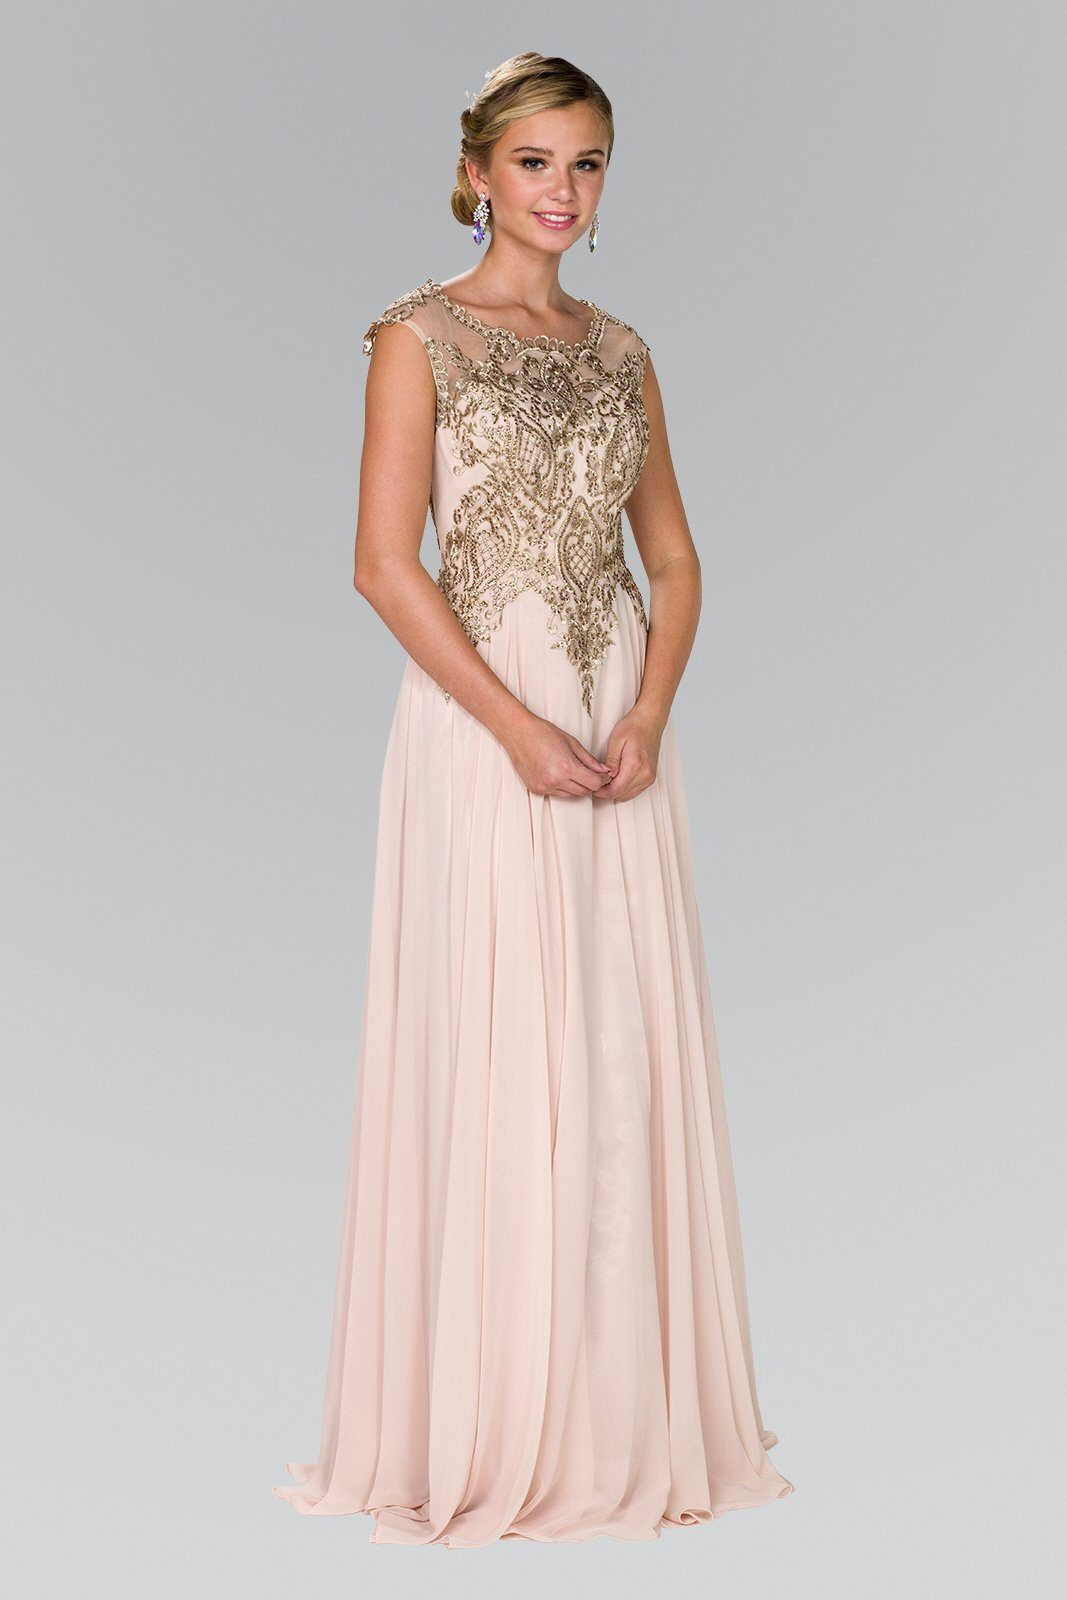 Champagne evening gown gls 2407 – Simply Fab Dress